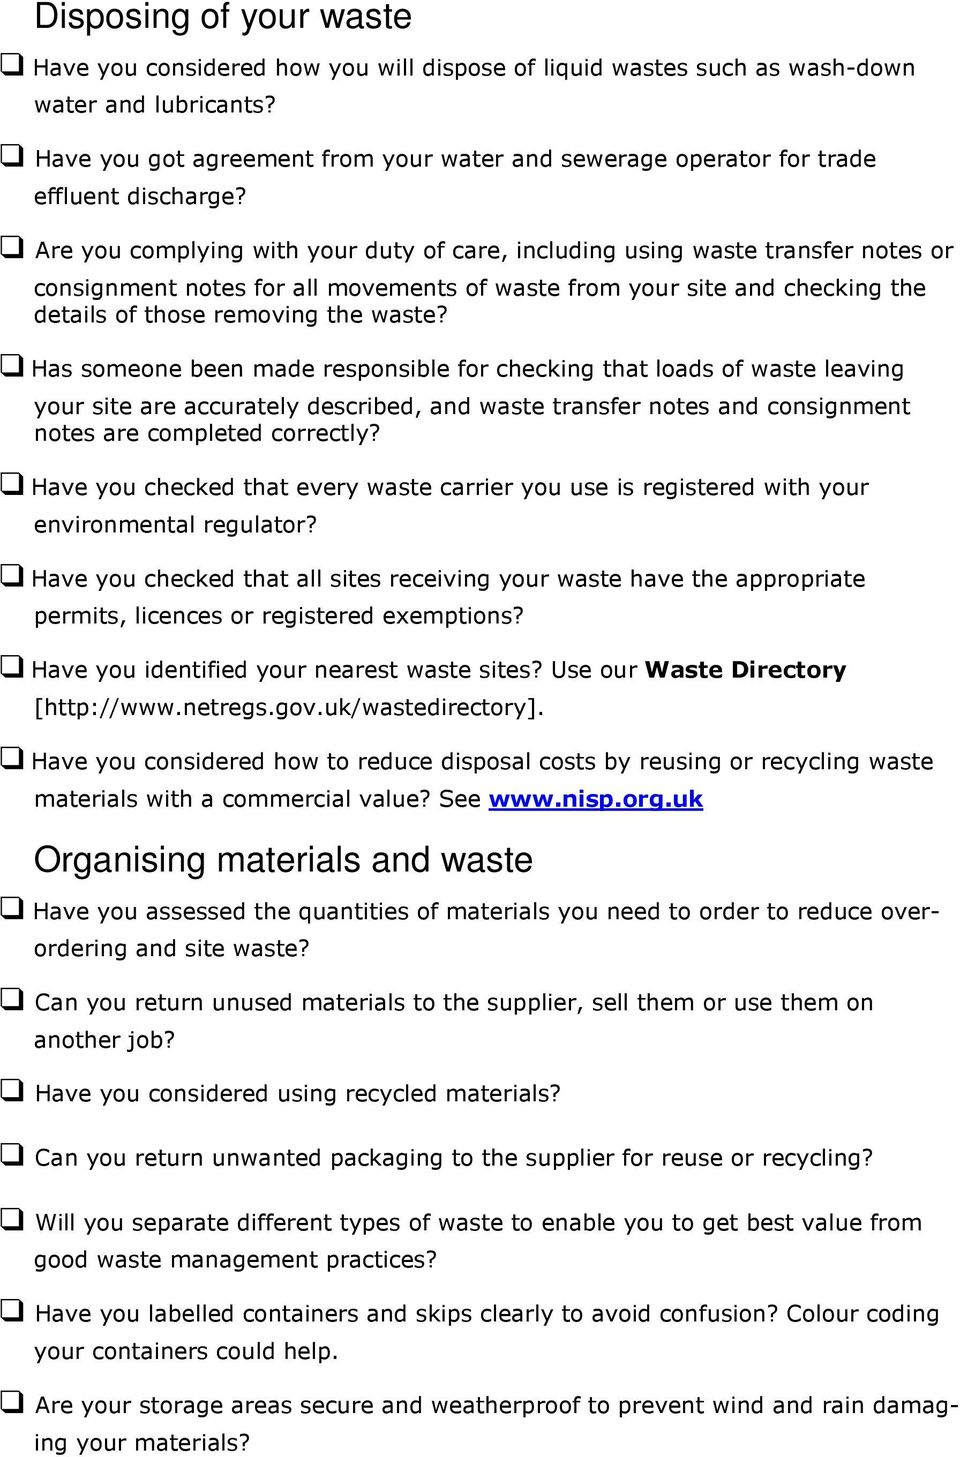 Are you complying with your duty of care, including using waste transfer notes or consignment notes for all movements of waste from your site and checking the details of those removing the waste?